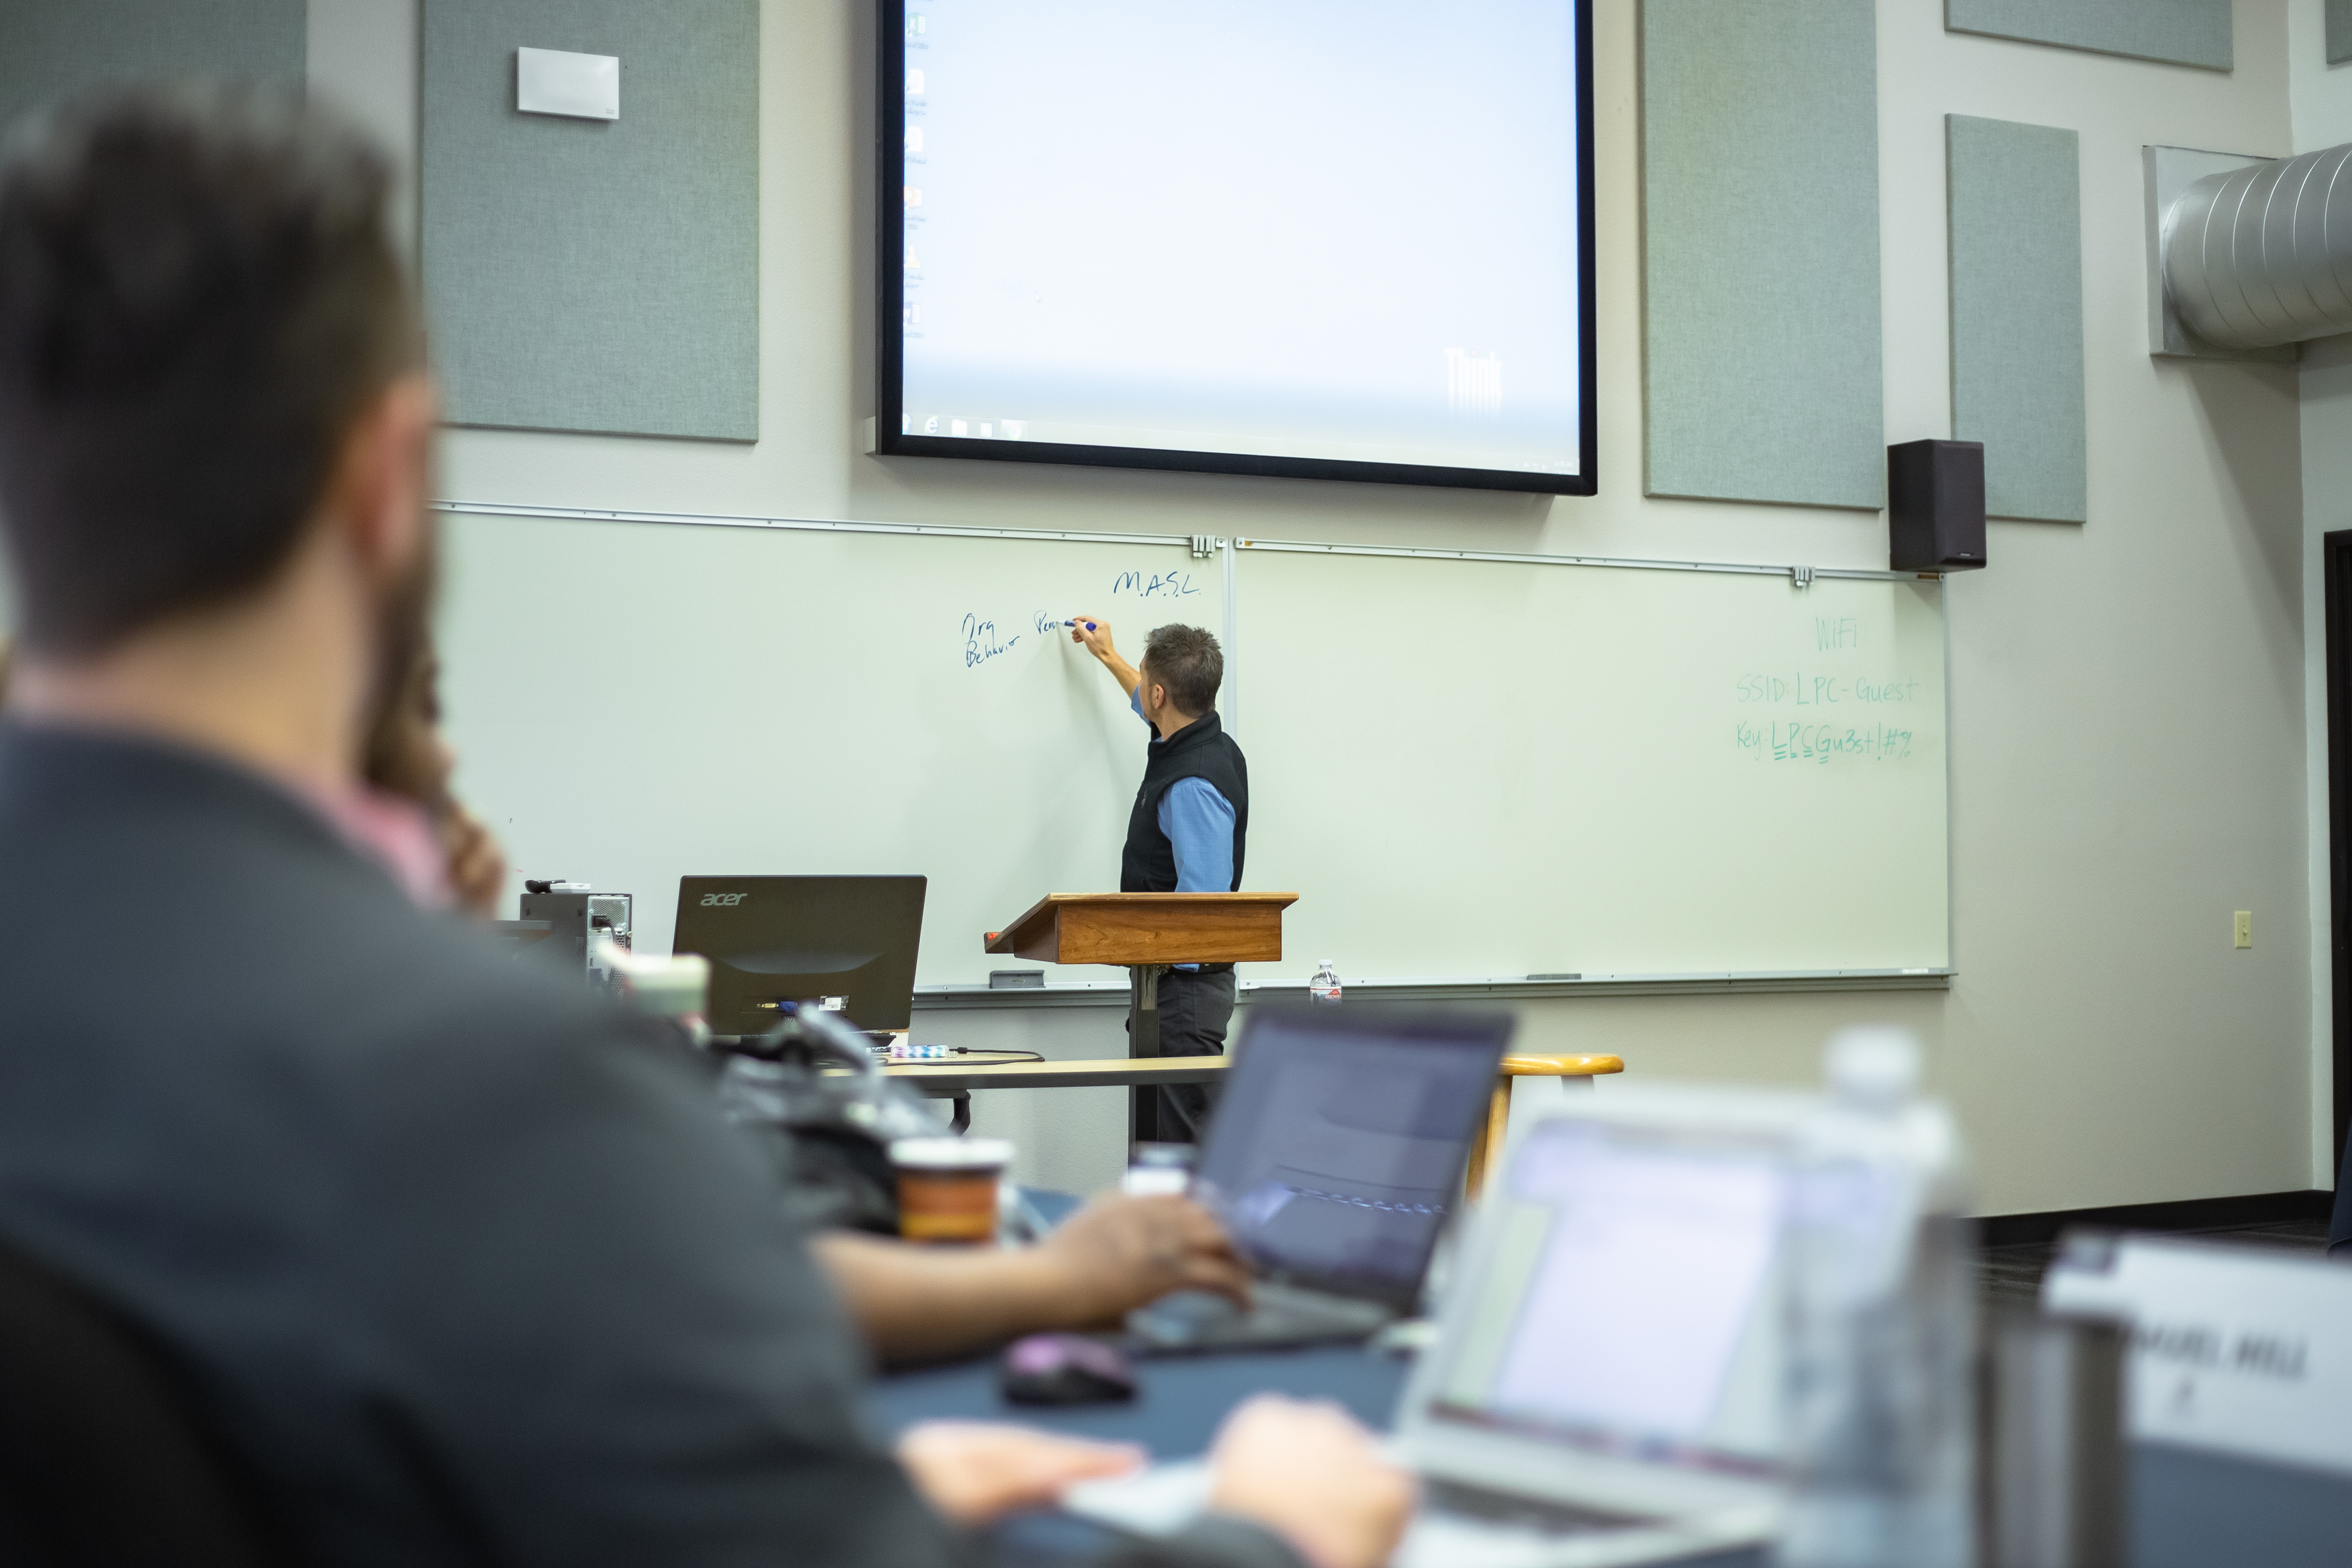 MASL Professor writing on whiteboard in front of class.